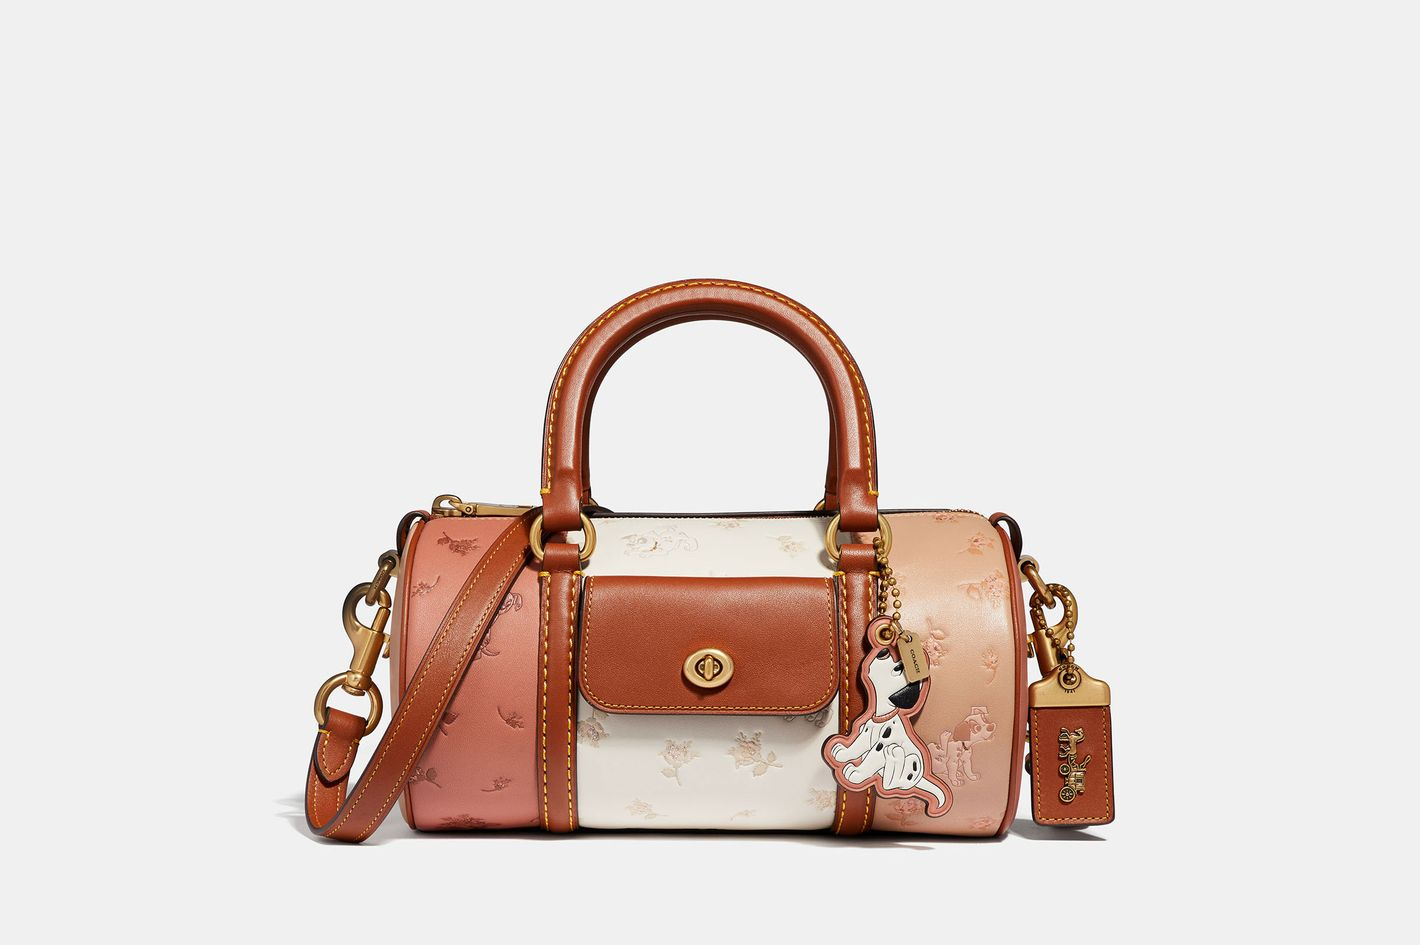 Disney X Coach Barrel Bag With Dalmatian Prairie Floral Print